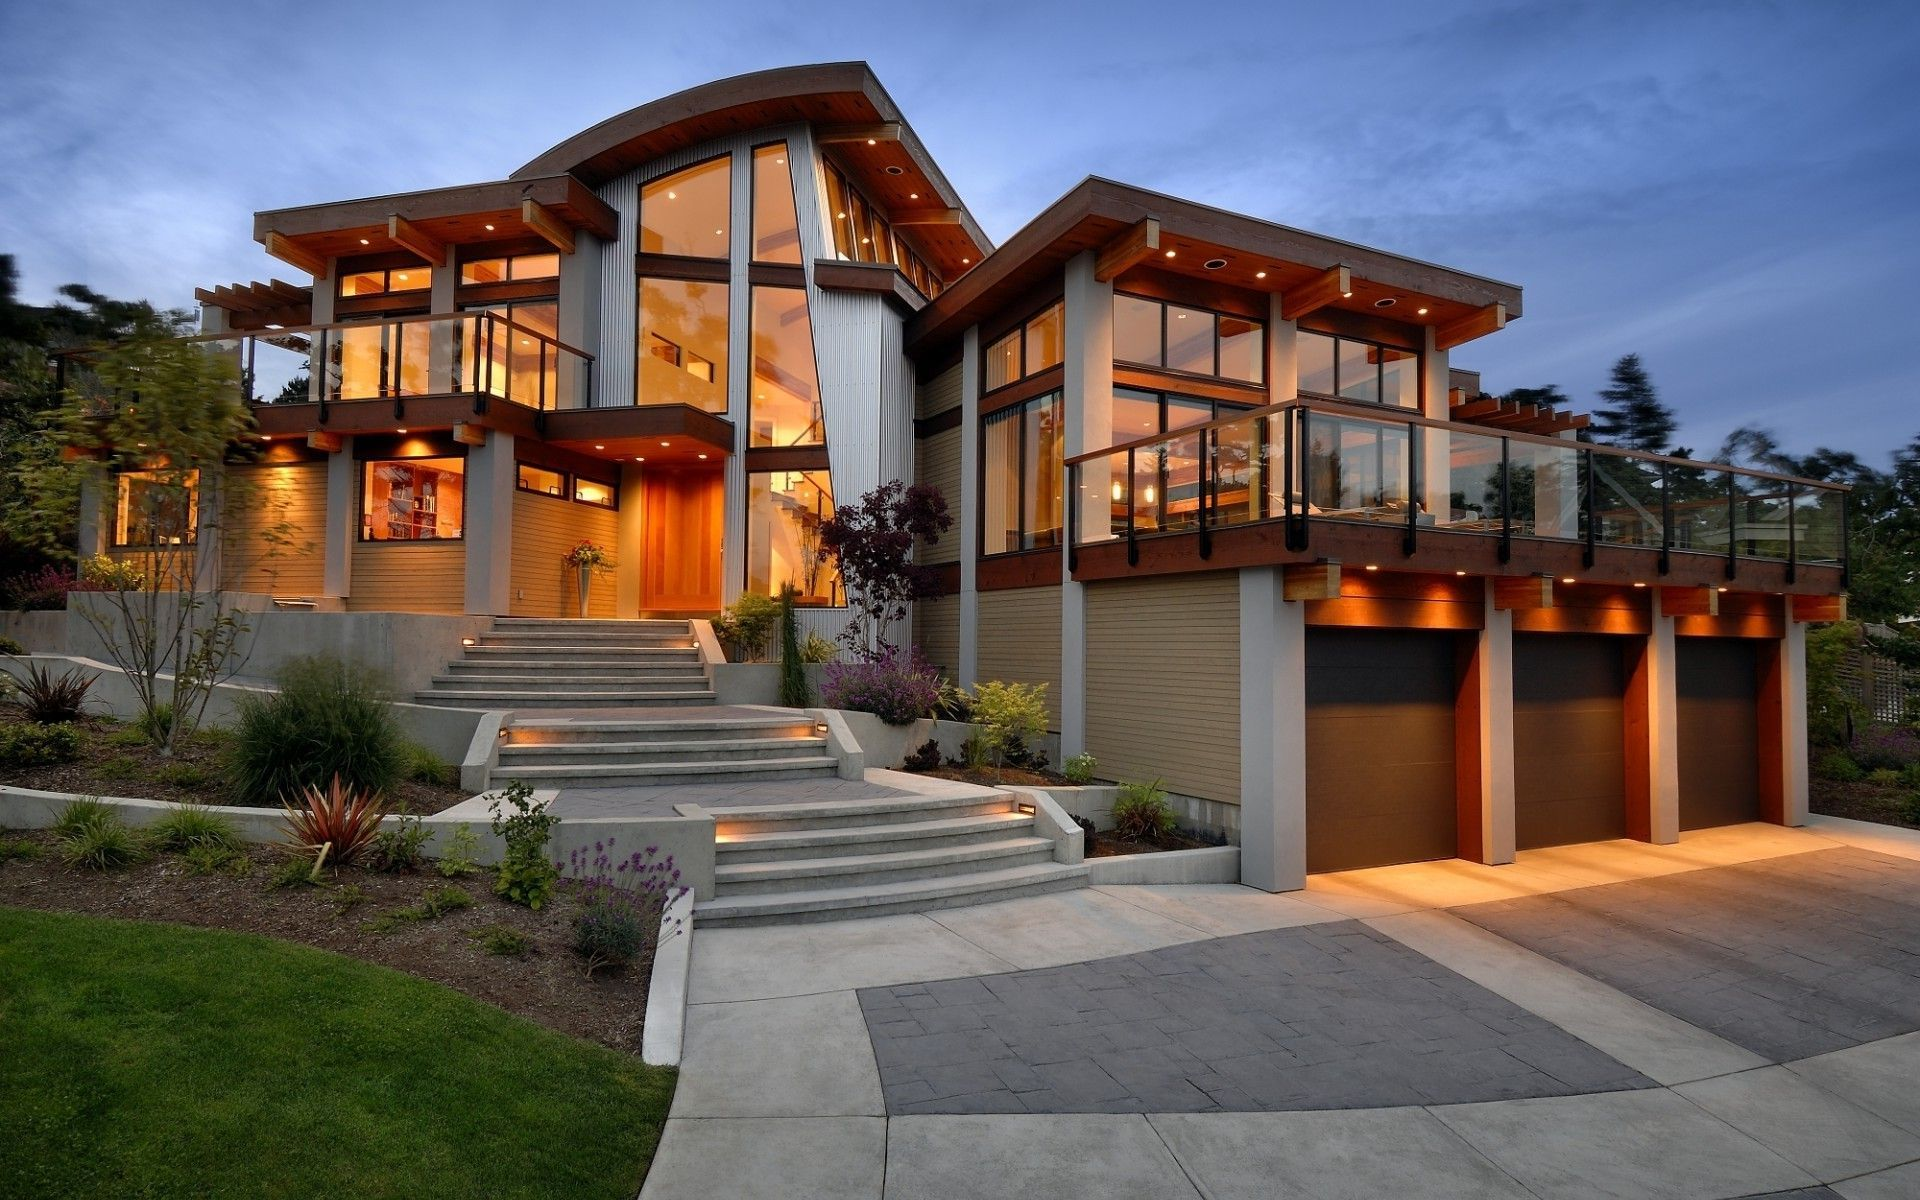 house-architecture-photography-hd-wallpaper-1920x1200-9237